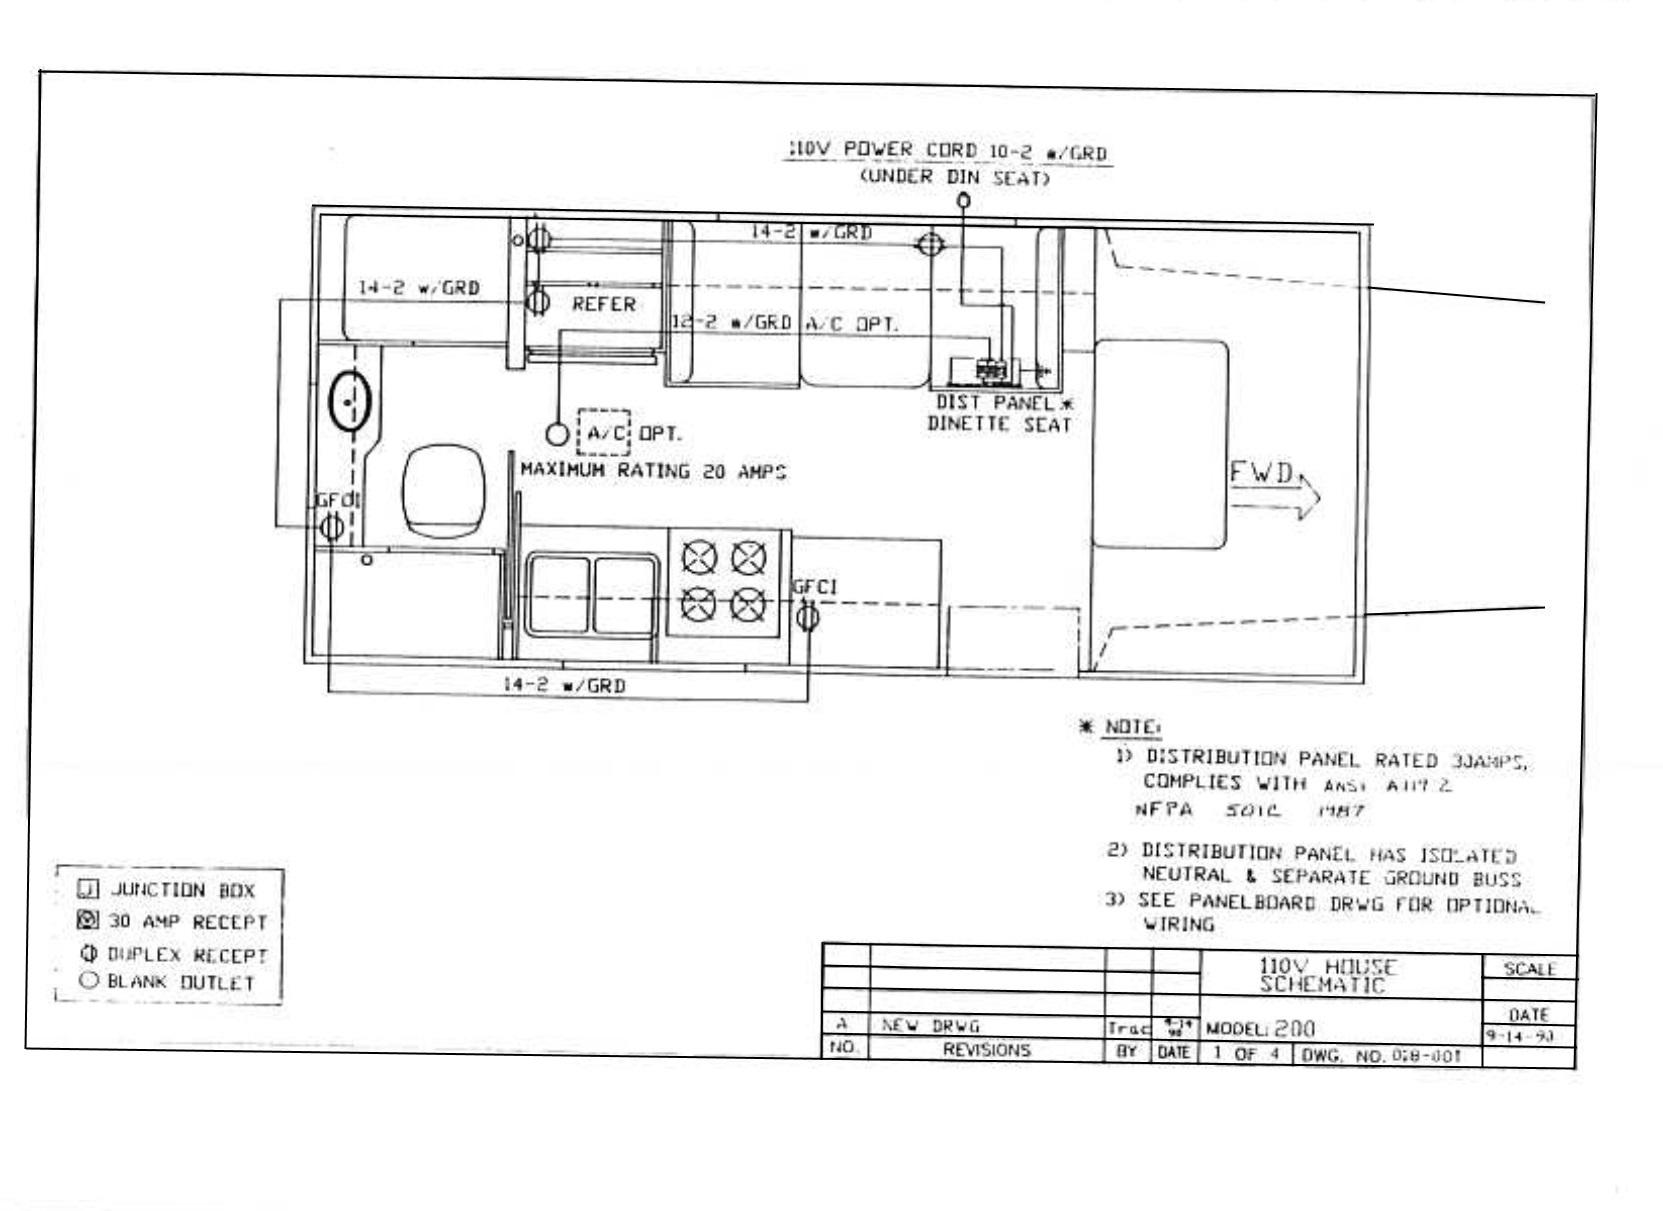 Dolphin Wiring Diagrams - Electrical - Toyota Motorhome Discussion Board